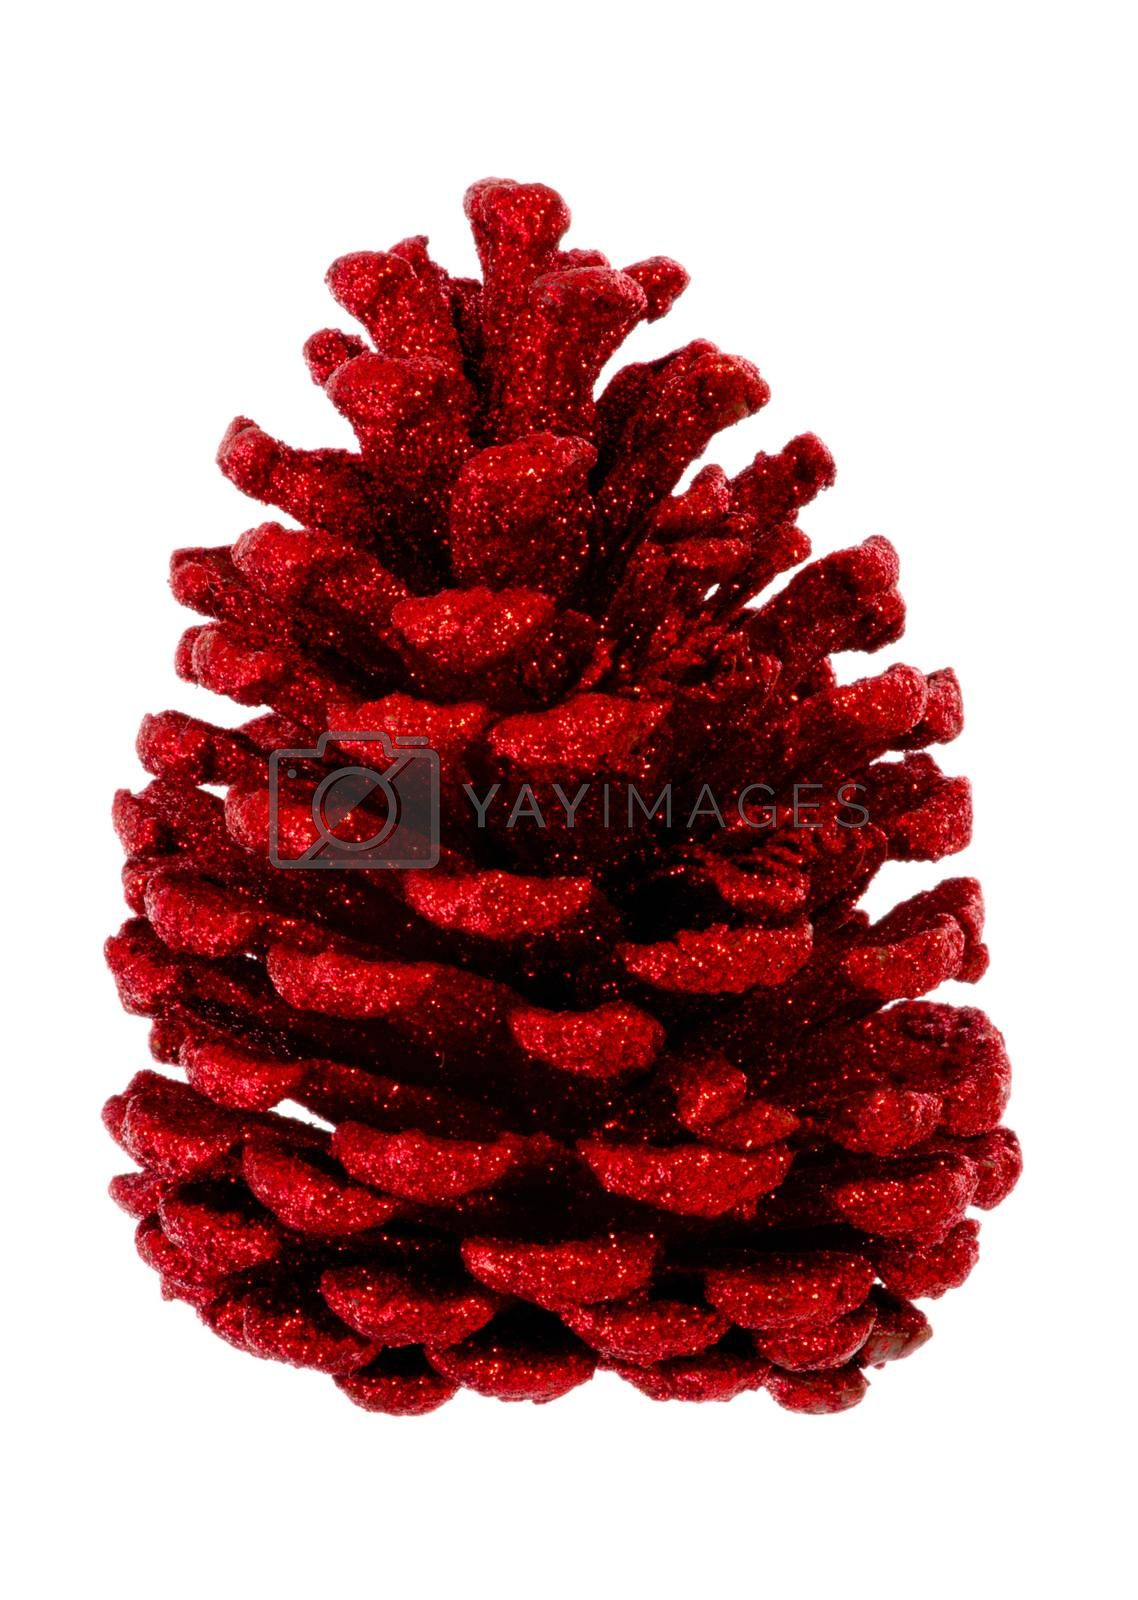 Red fir cone brightened